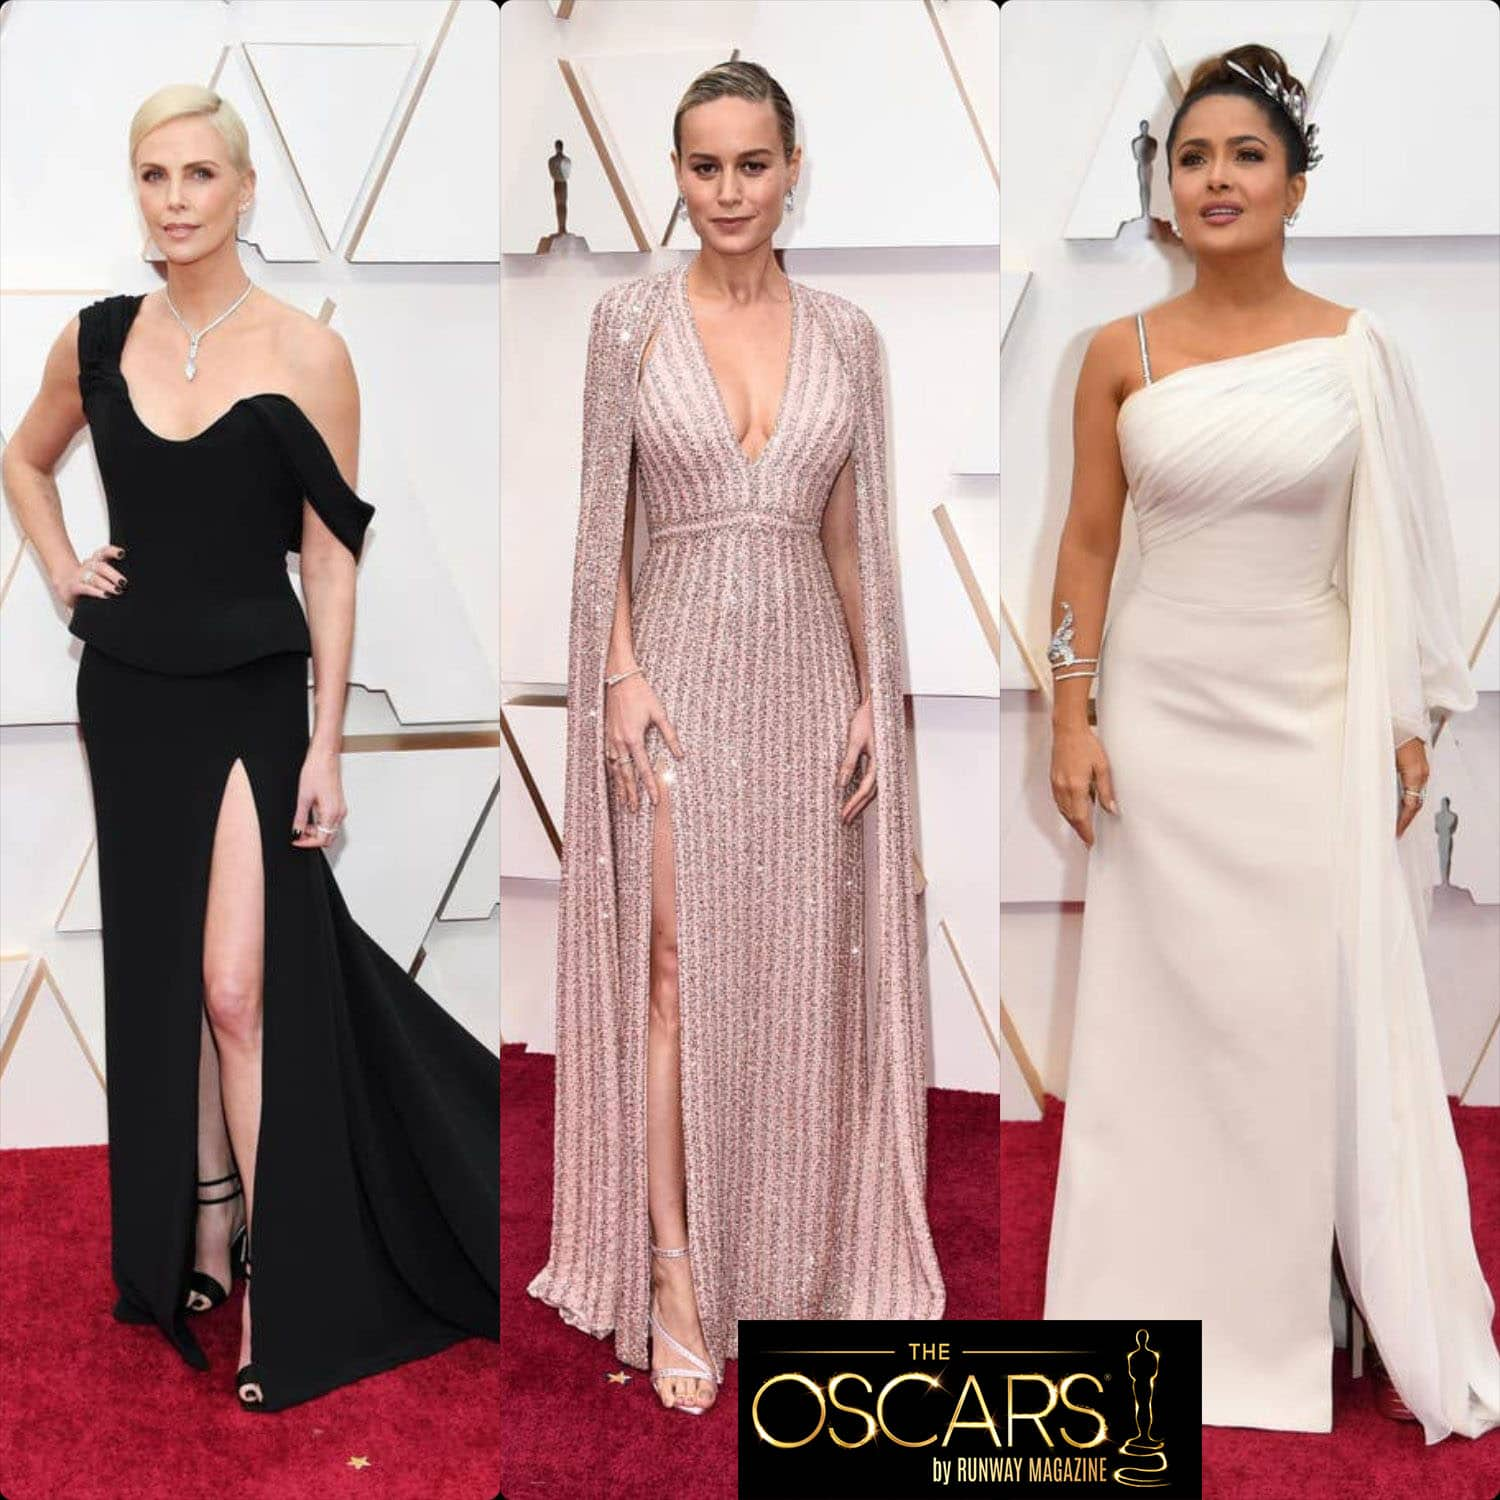 Charlize Theron in Dior, Brie Larson in Celine, Salma Hayek in Gucci at the 2020 Oscars by RUNWAY MAGAZINE